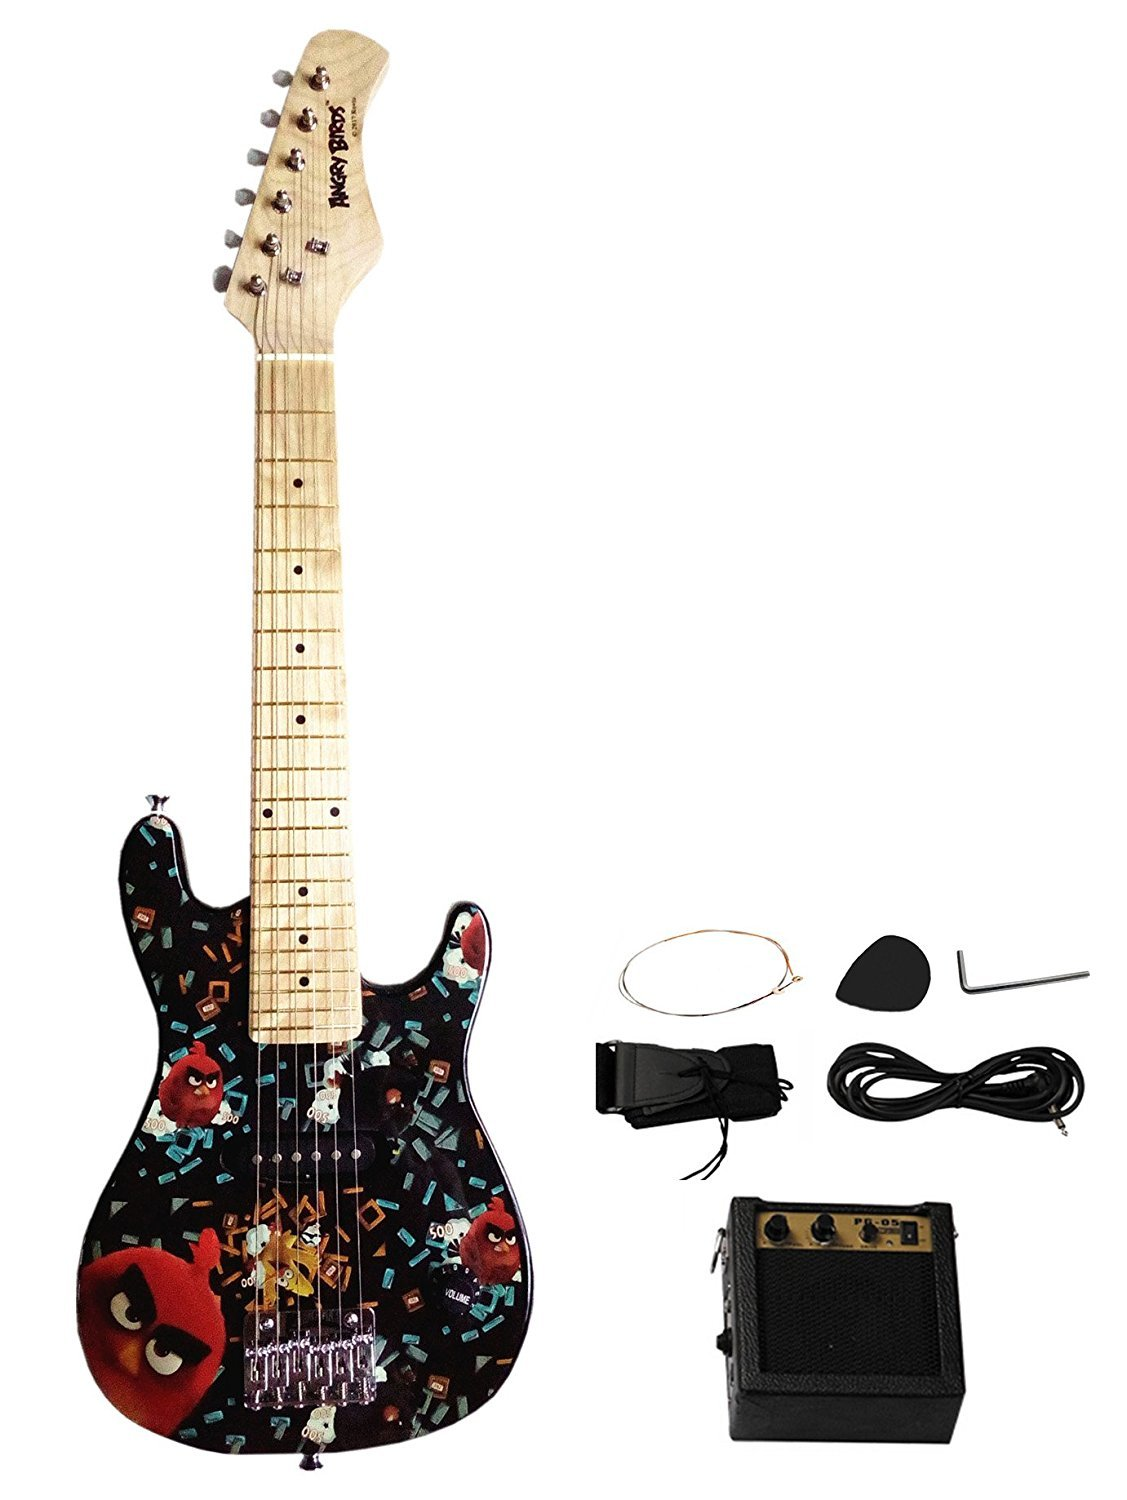 Berry Toys Angry Birds Electric Guitars, Black